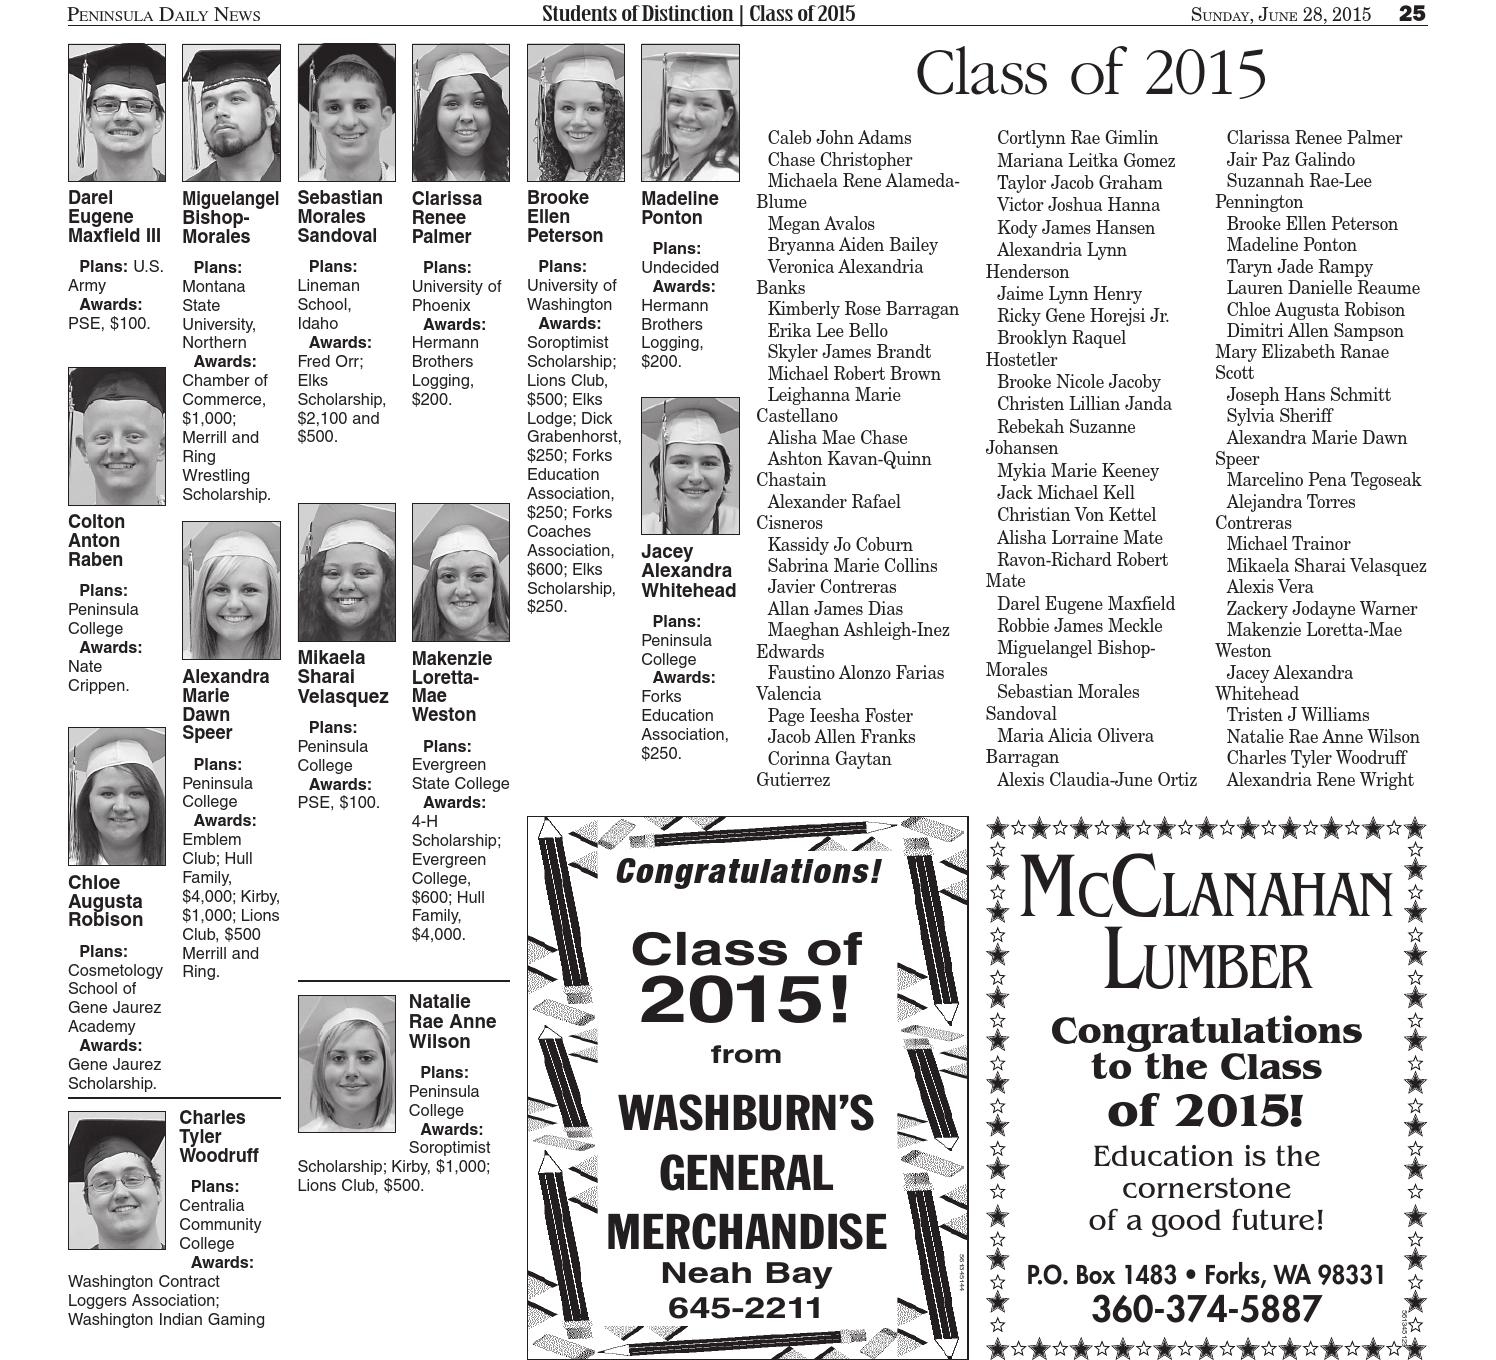 Students of Distinction; Class of 2015 by Peninsula Daily